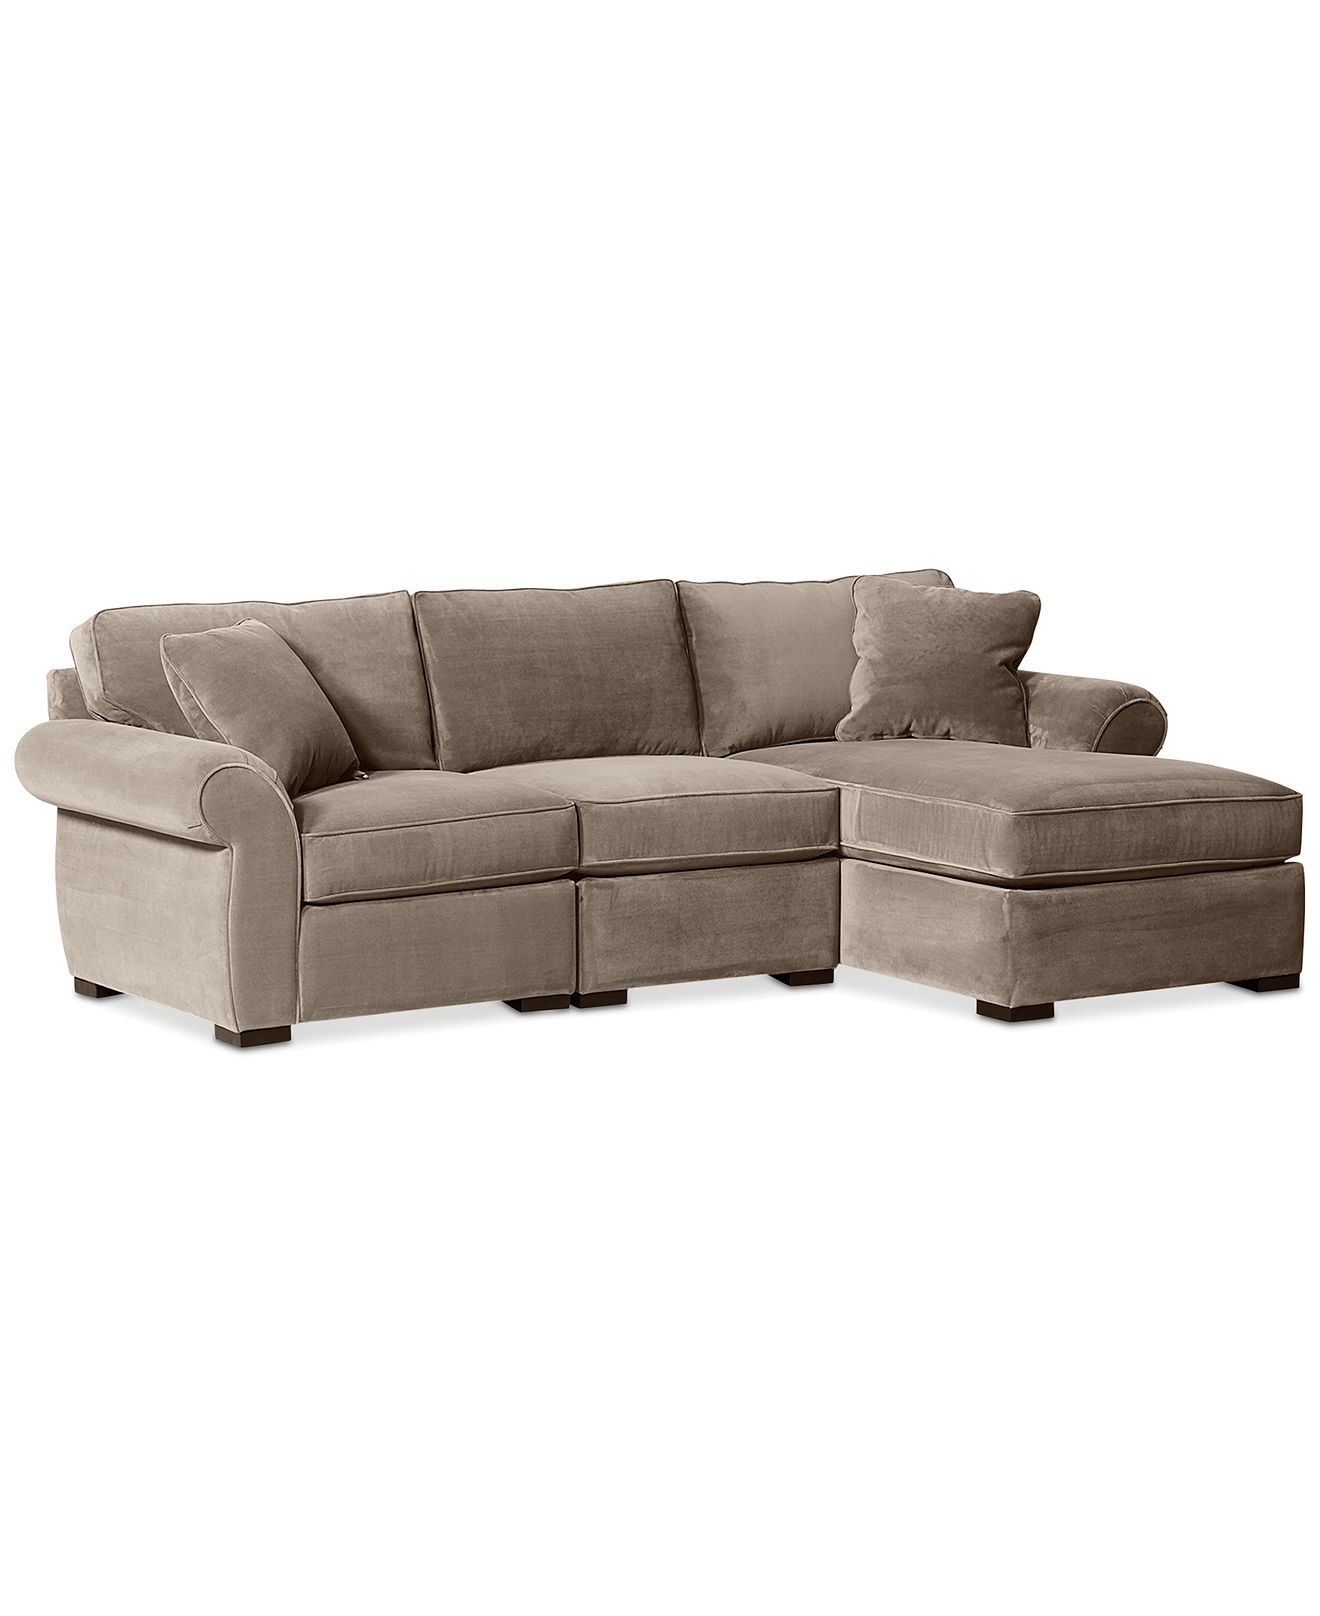 Trevor fabric 3 piece chaise sectional sofa couches s